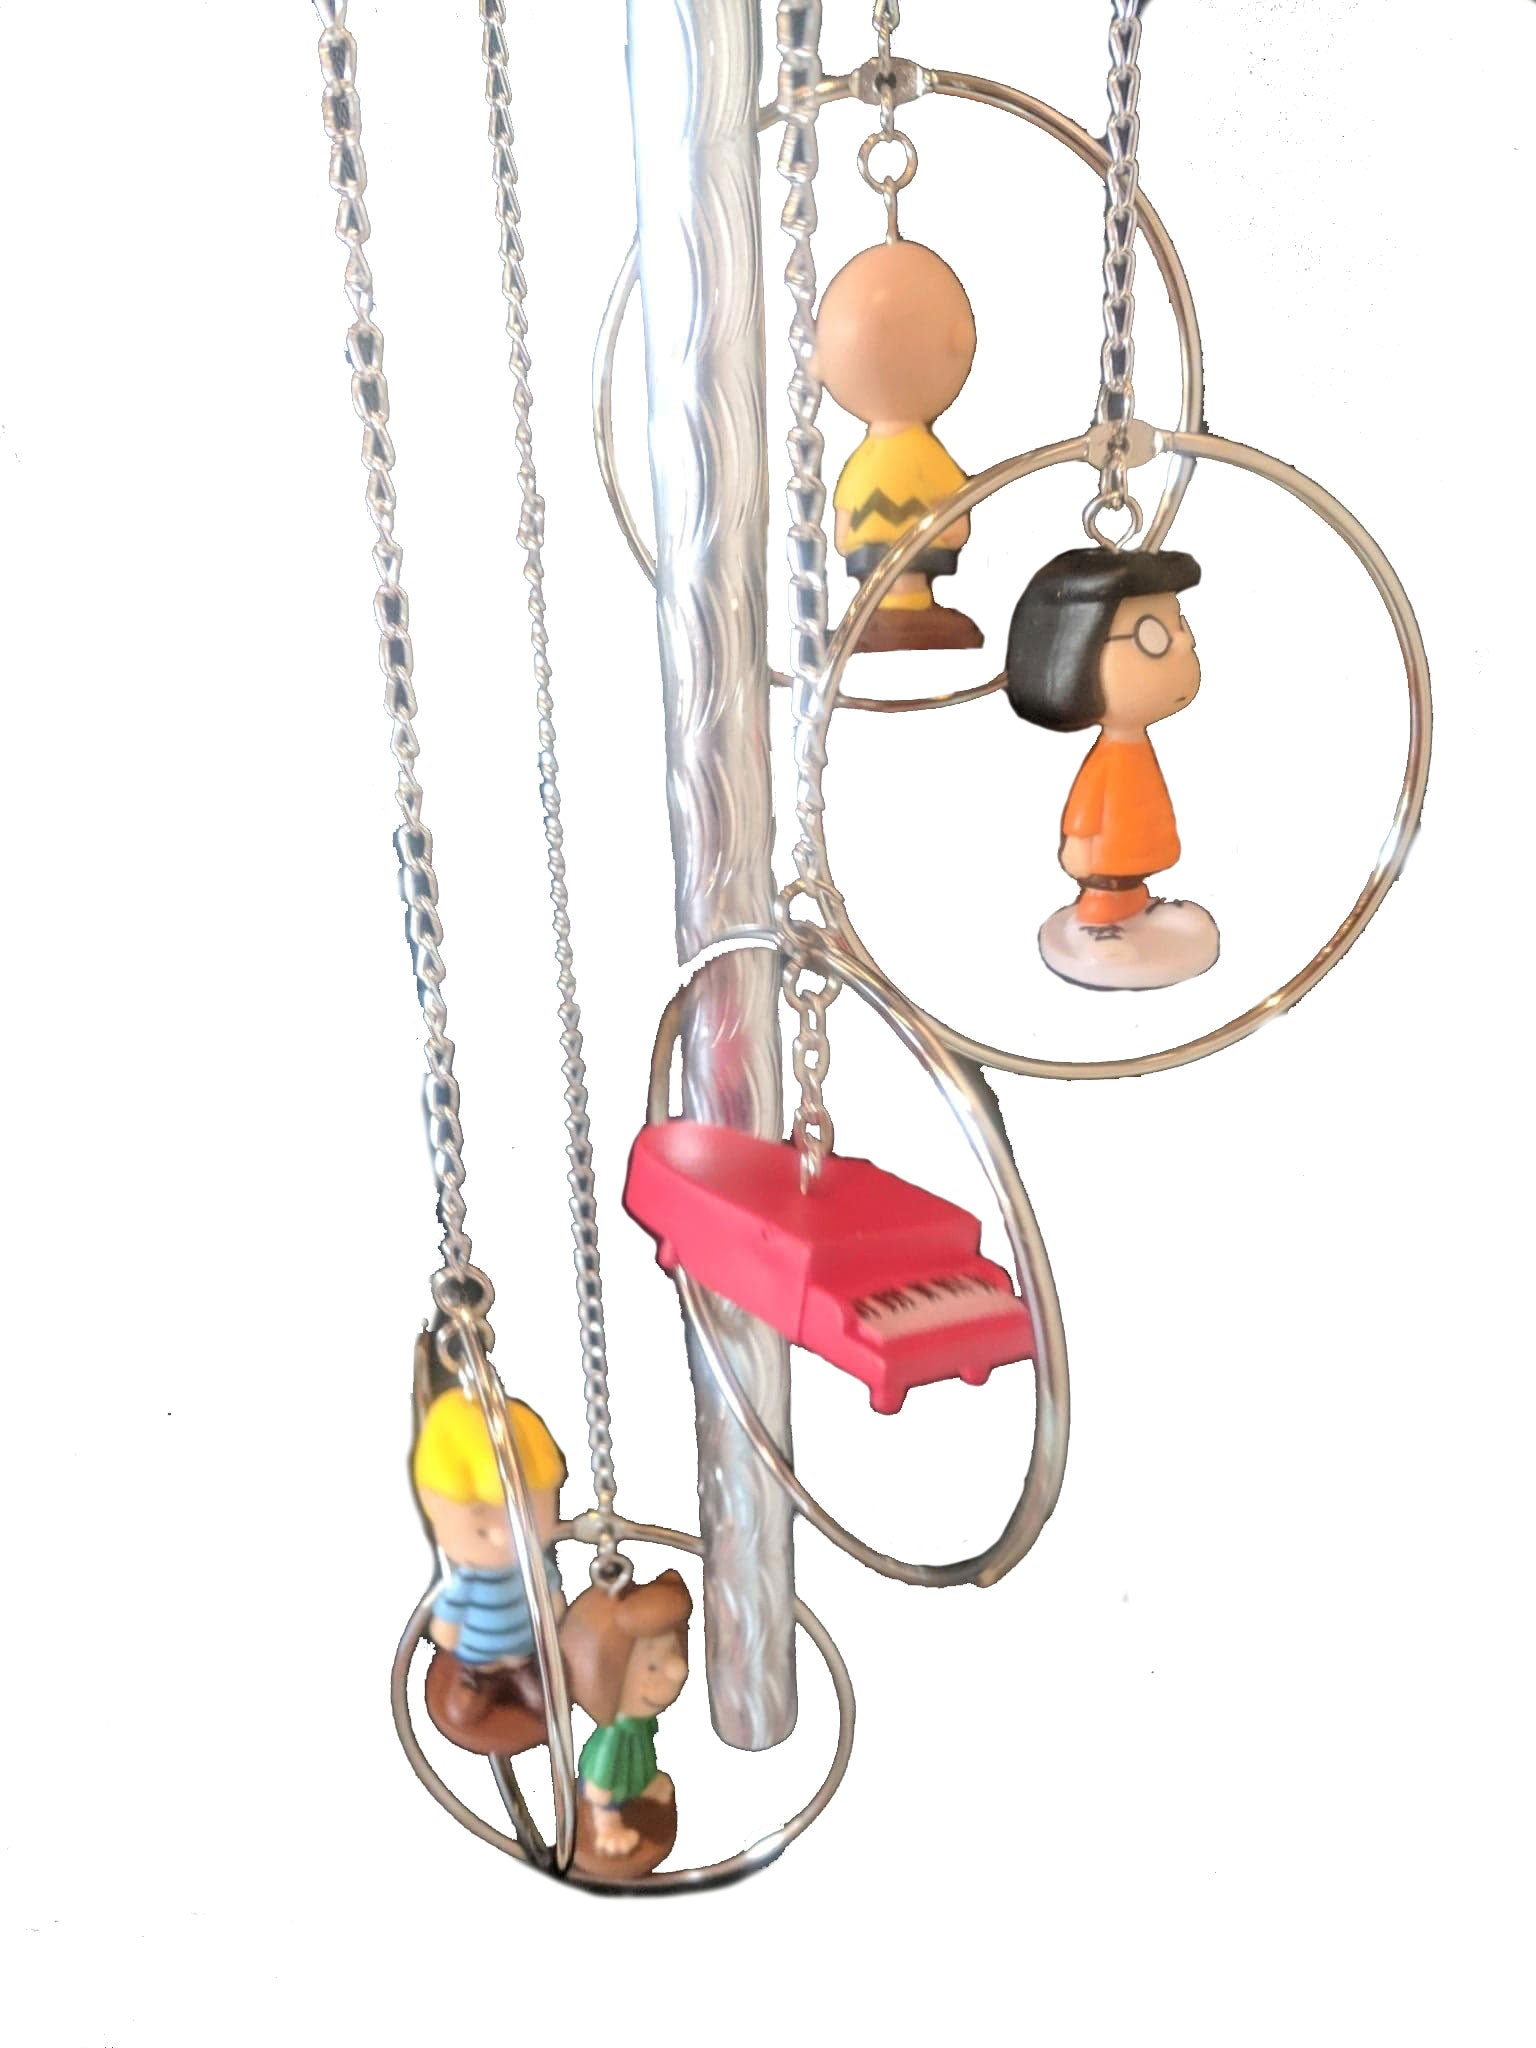 Peanuts Characters Wind Chime | Includes Schroeder's Piano | FREE Shipping